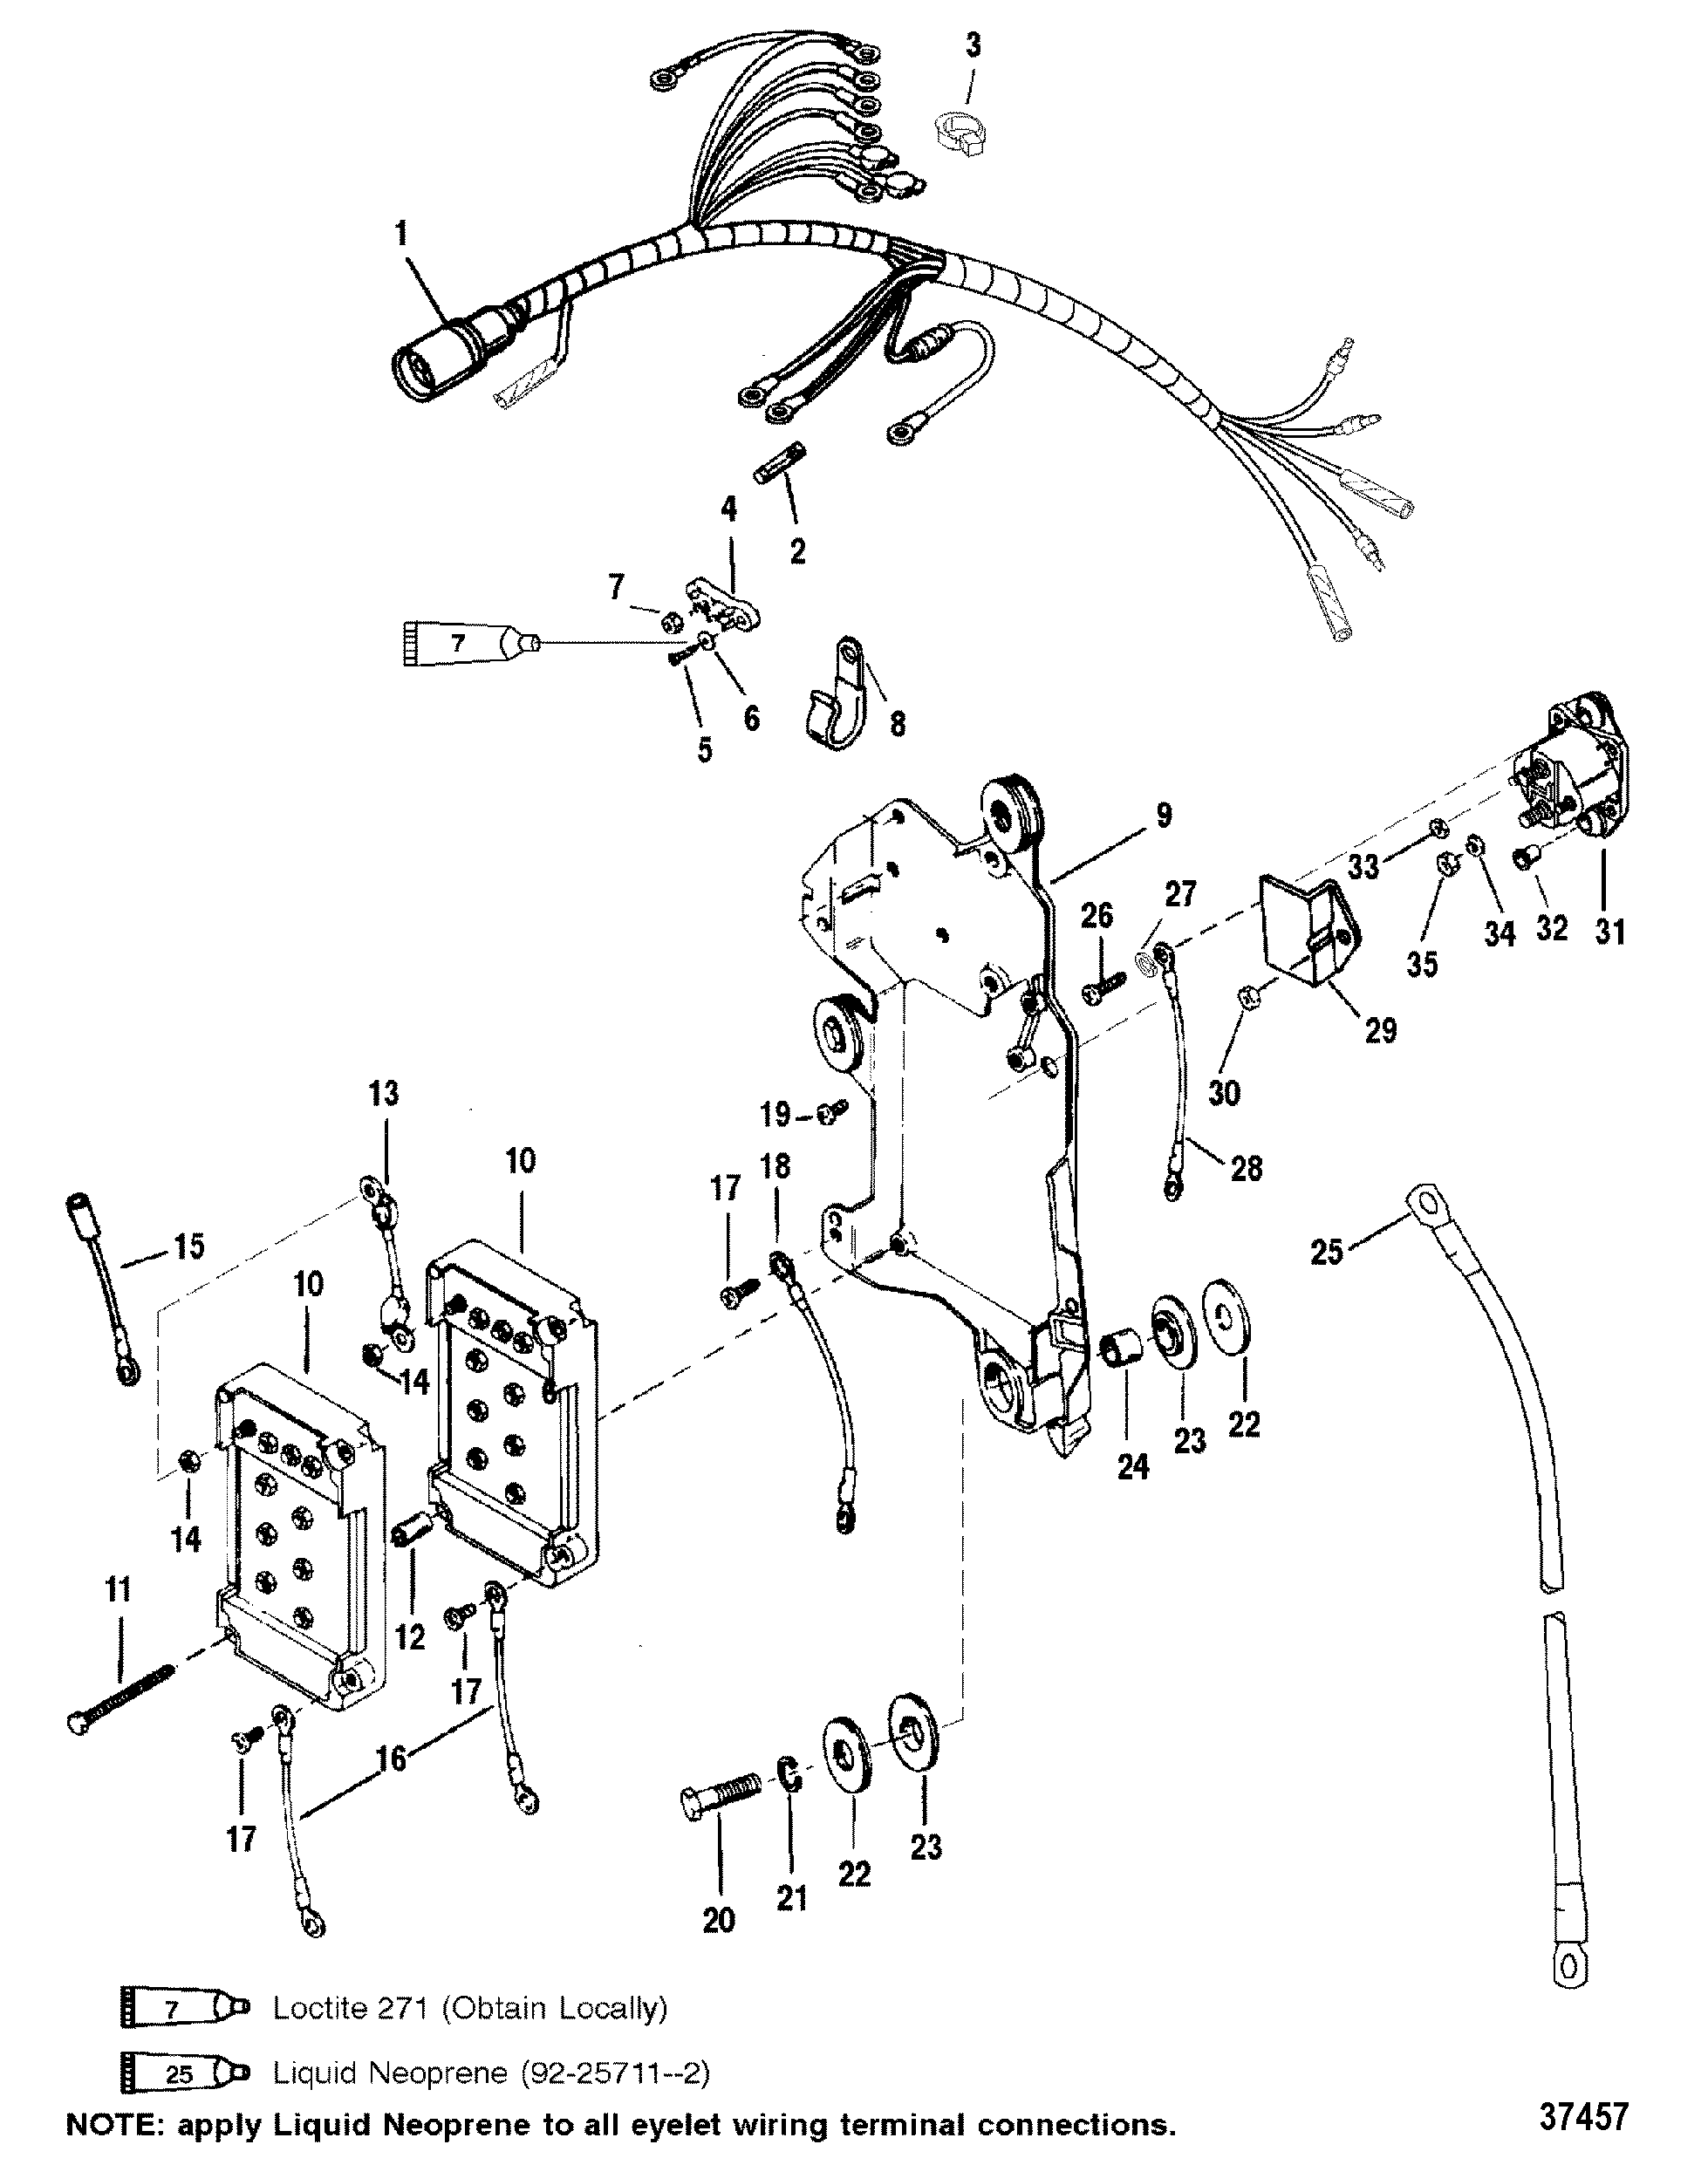 37457 wiring harness starter solenoid for mariner mercury 150 175 200 efi mercury 14 pin wiring harness diagram at mifinder.co